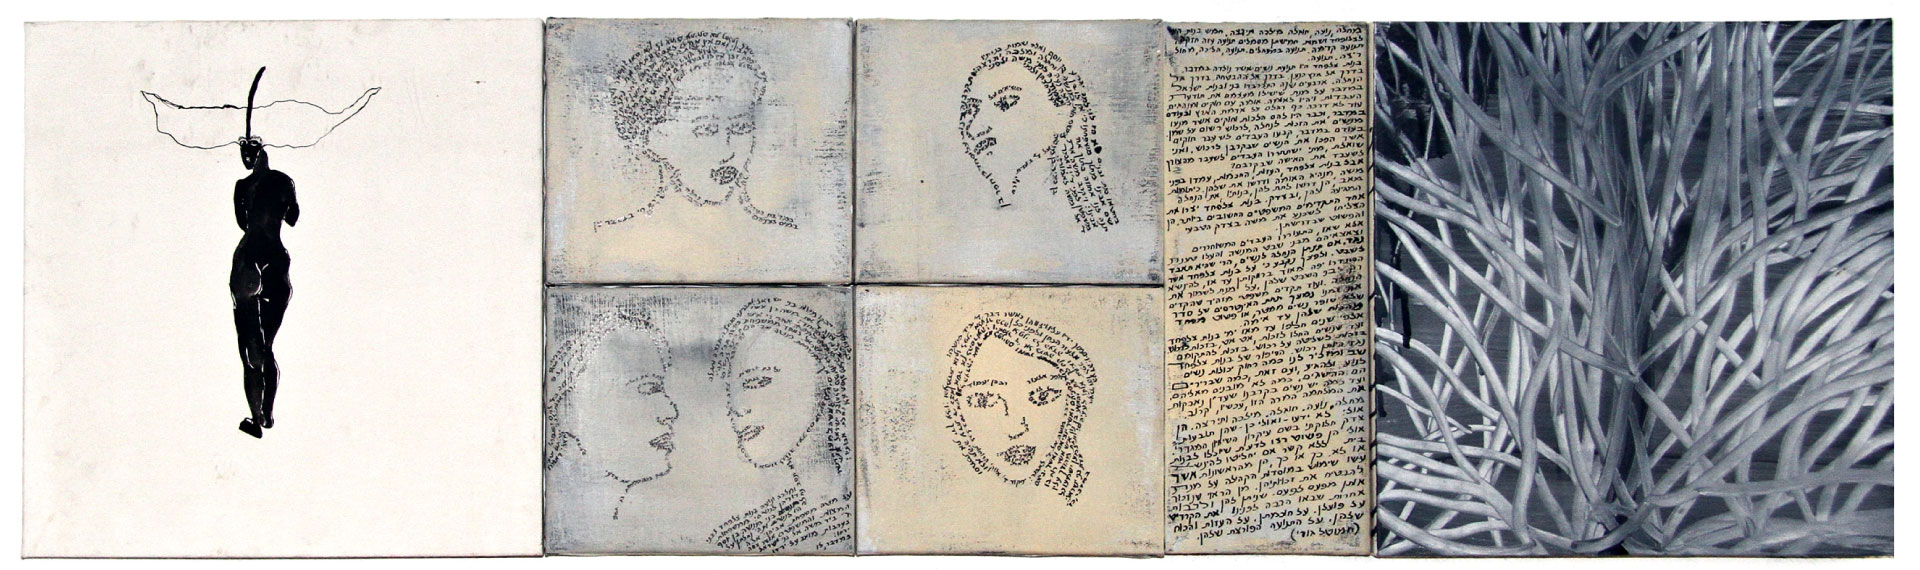 """Shula Keshet, Zelophehad's Daughters, 2011. From the series """"Women's Tractate A"""", Biblical text: Numbers Chapters 27, 36. Interpretation: Hamutal Guri. Acrylic and ink on canvas, 53 x 180 cm. Artist's collection"""